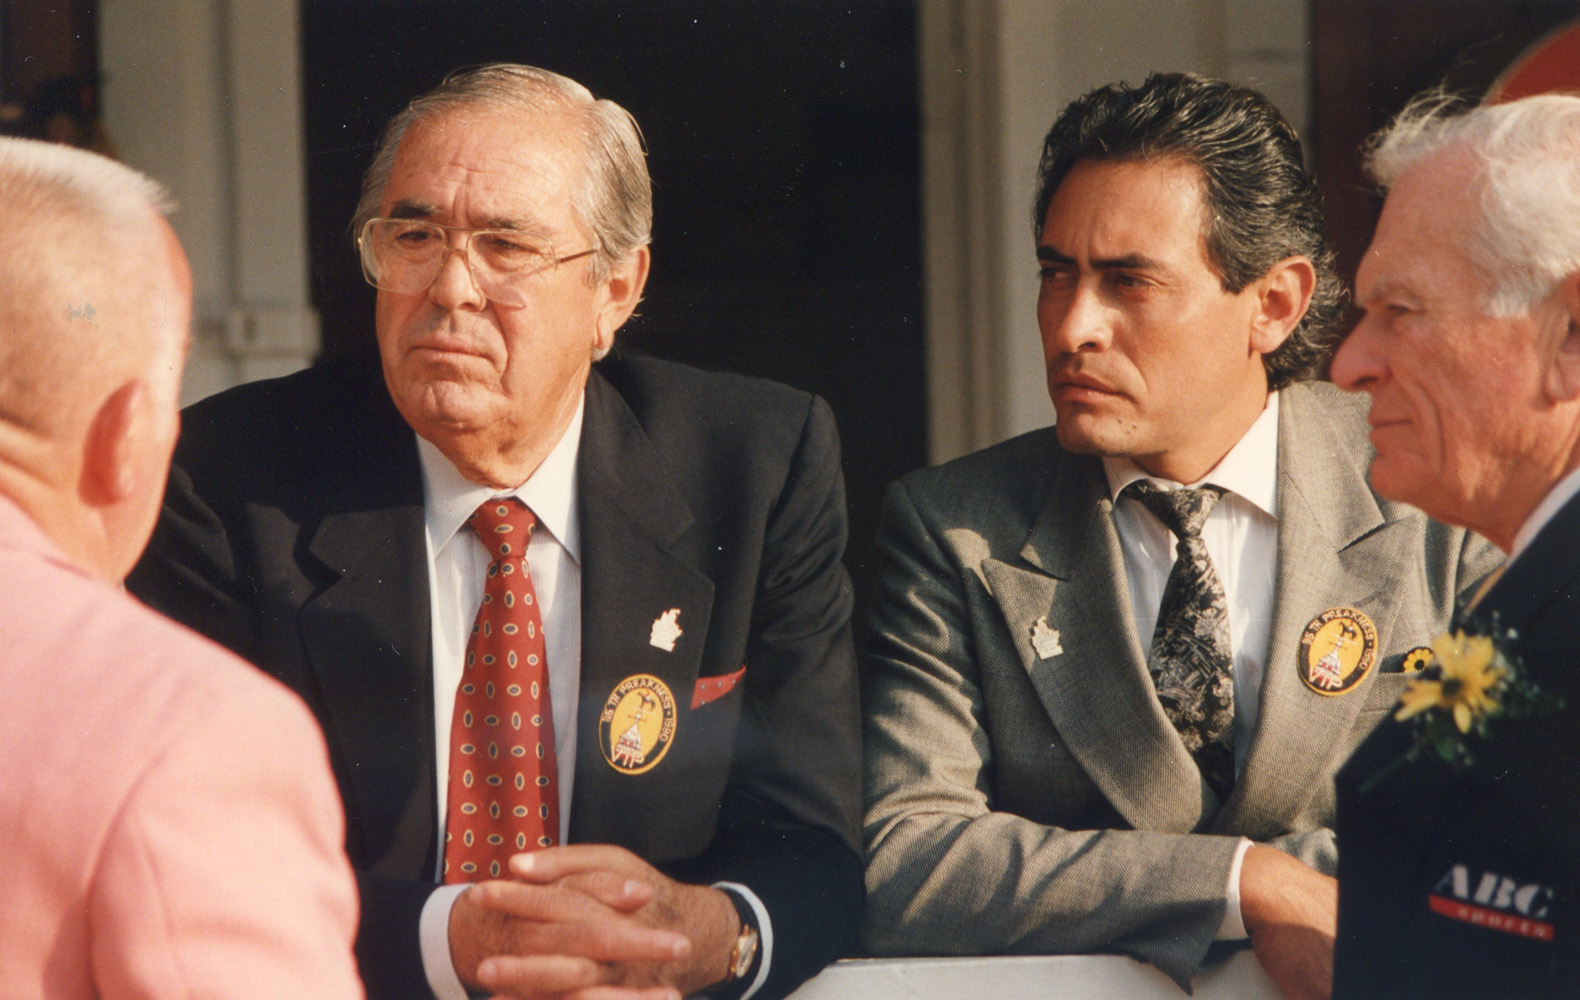 Laz Barerra and son Albert Barerra at Pimlico in May 1990 (Barbara D. Livingston/Museum Collection)